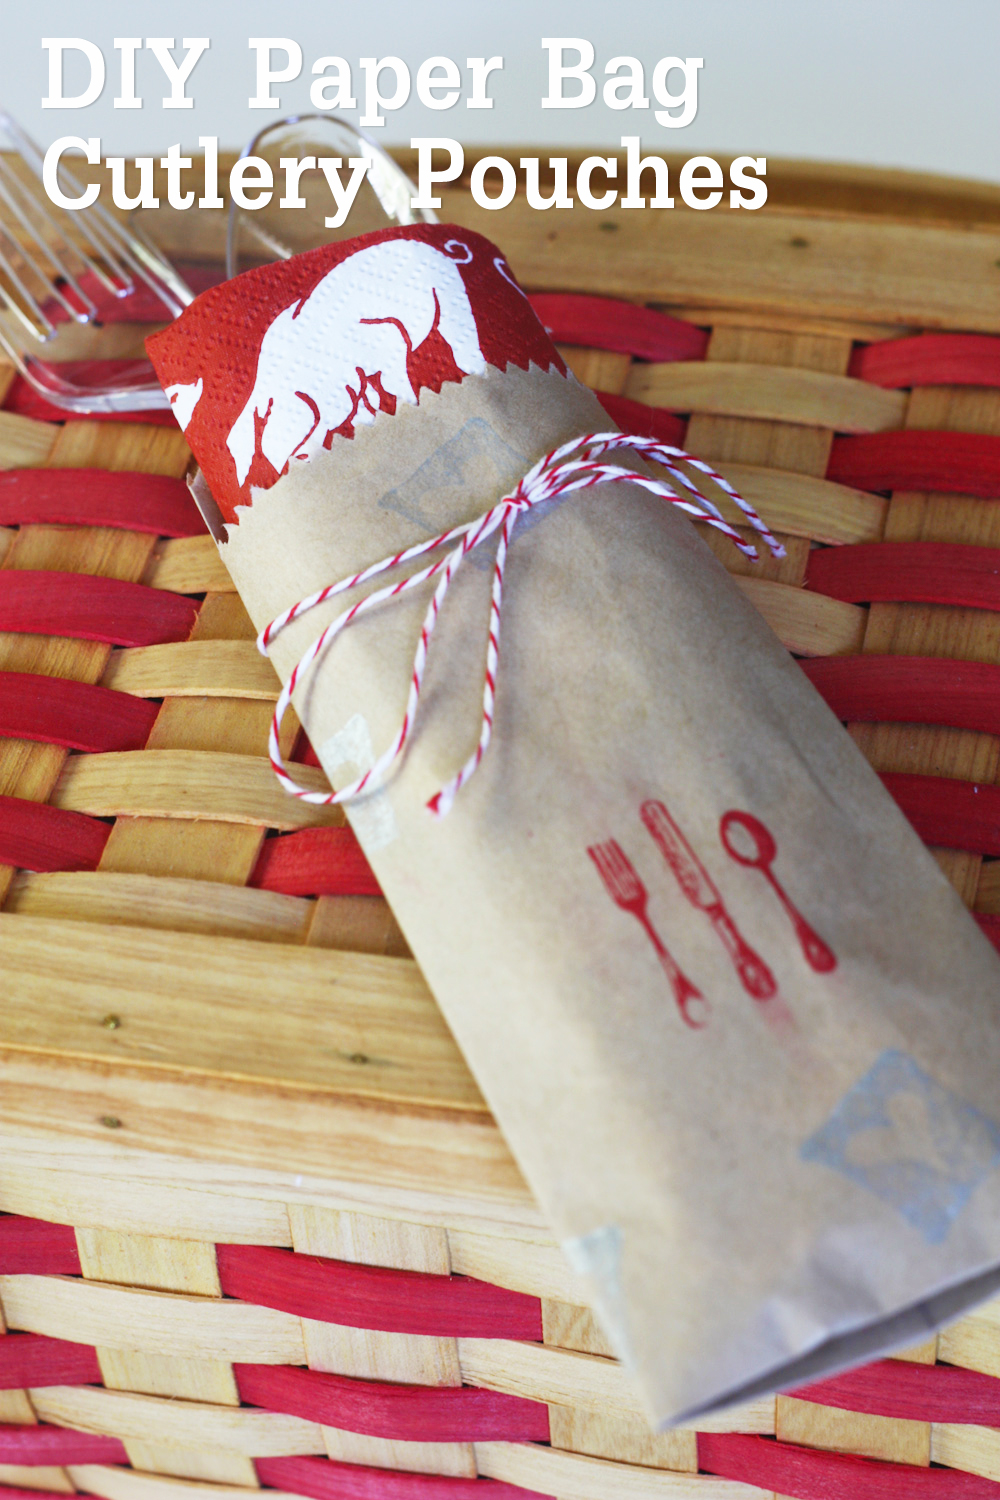 Diy How To Make Paper Bag Cutlery Pouches Catch My Party